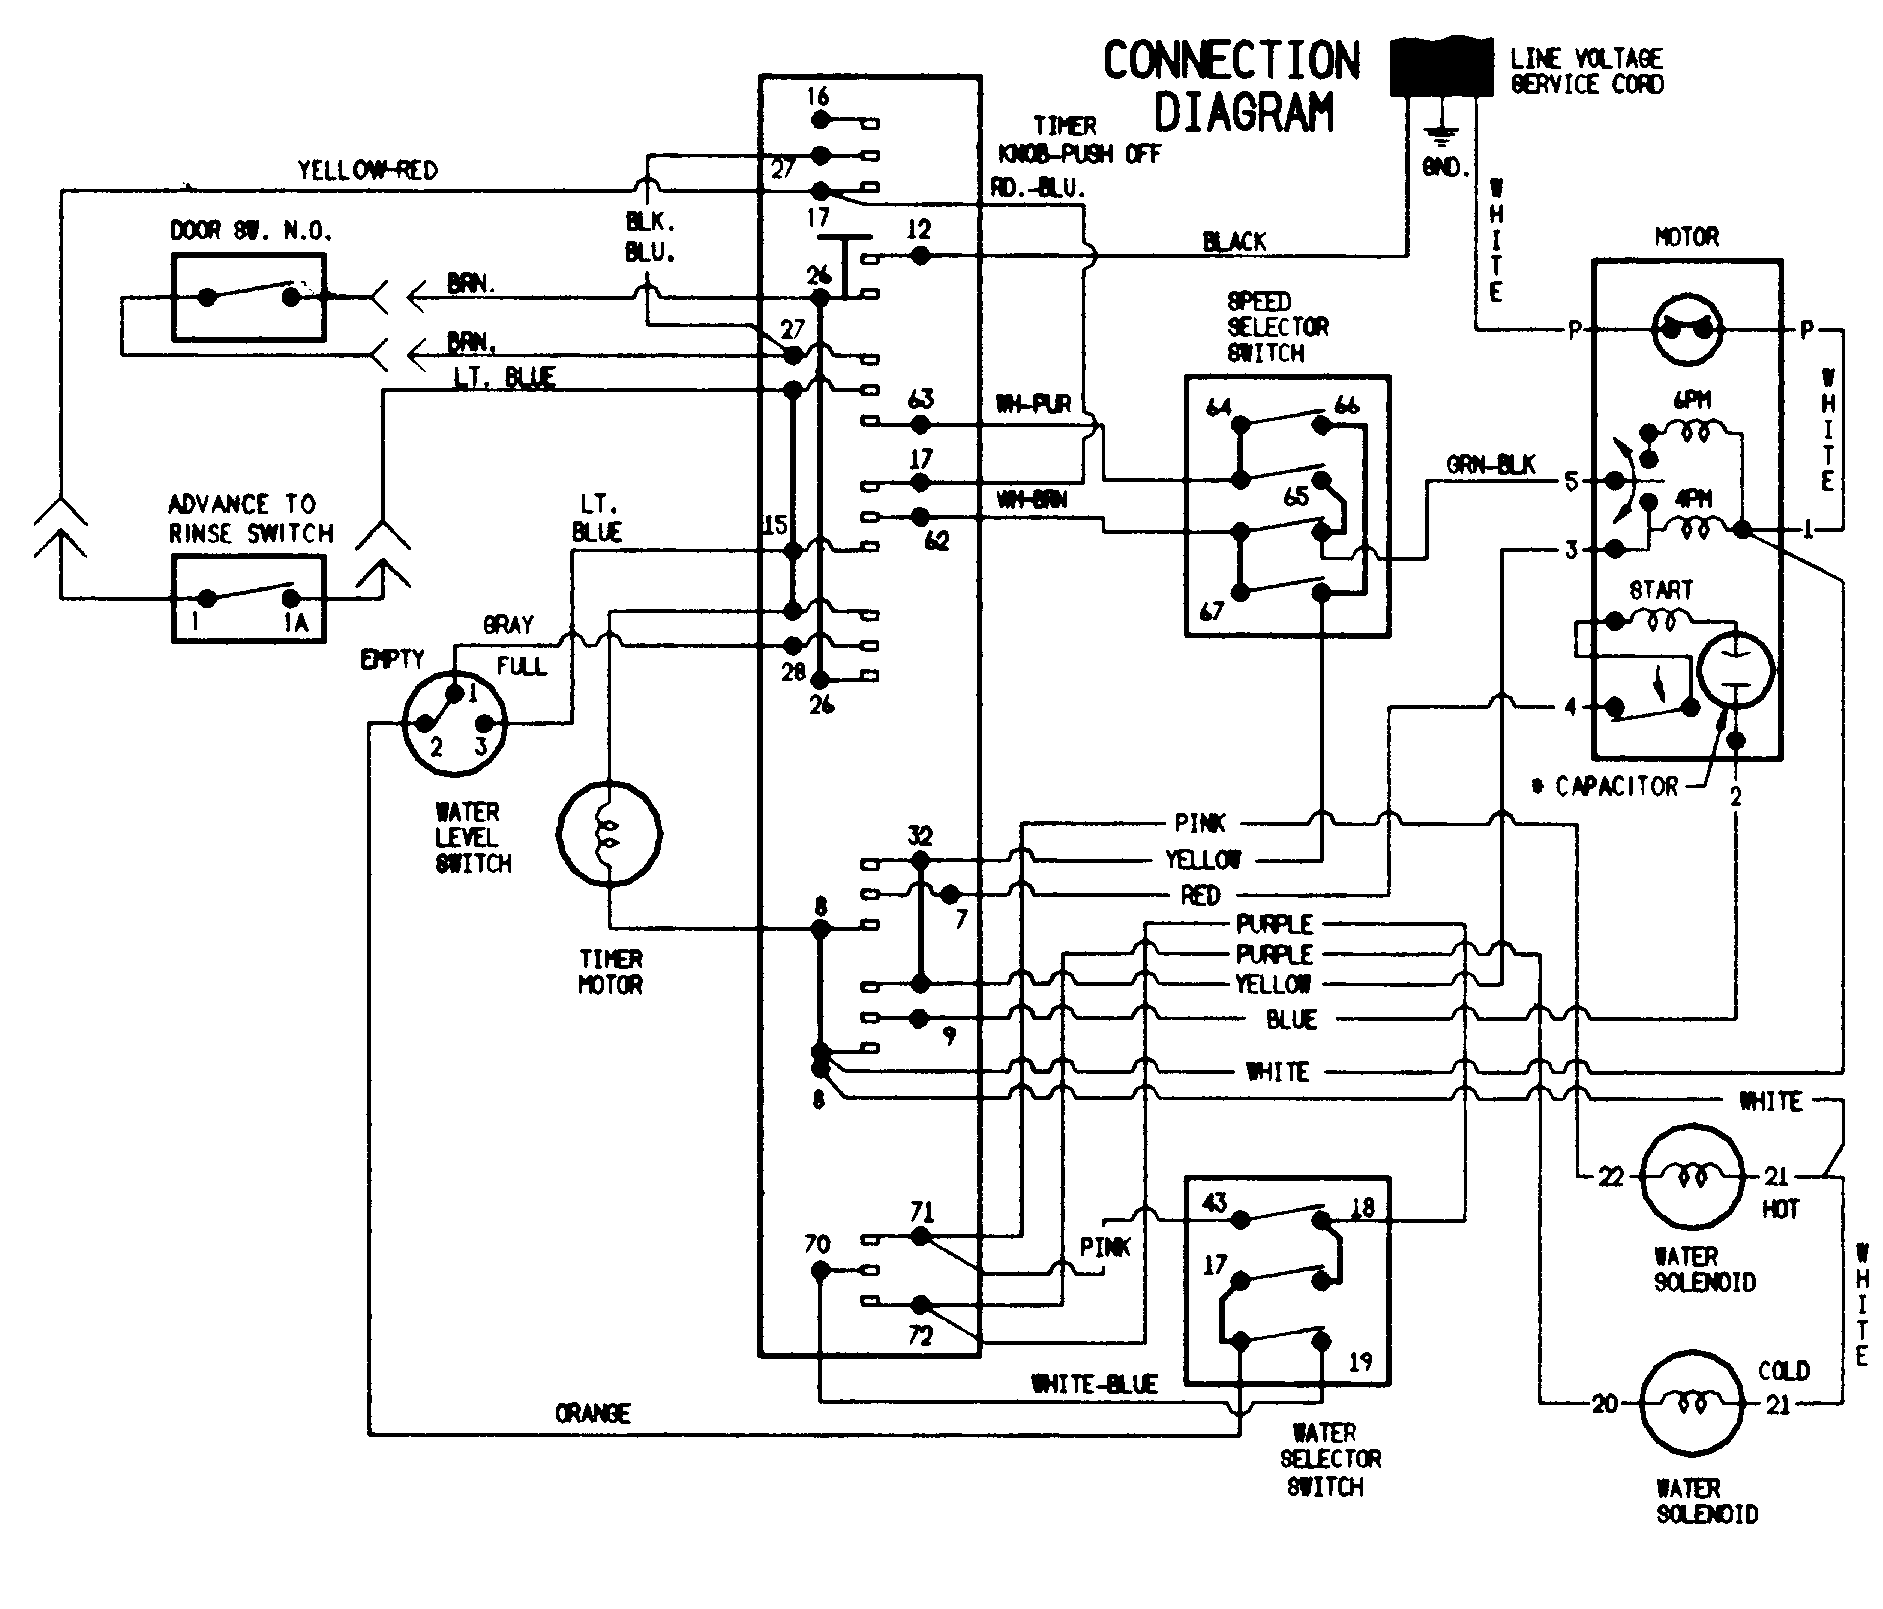 hight resolution of wiring diagram for lg 7932st wiring diagram expert lg shs36 d wiring diagram